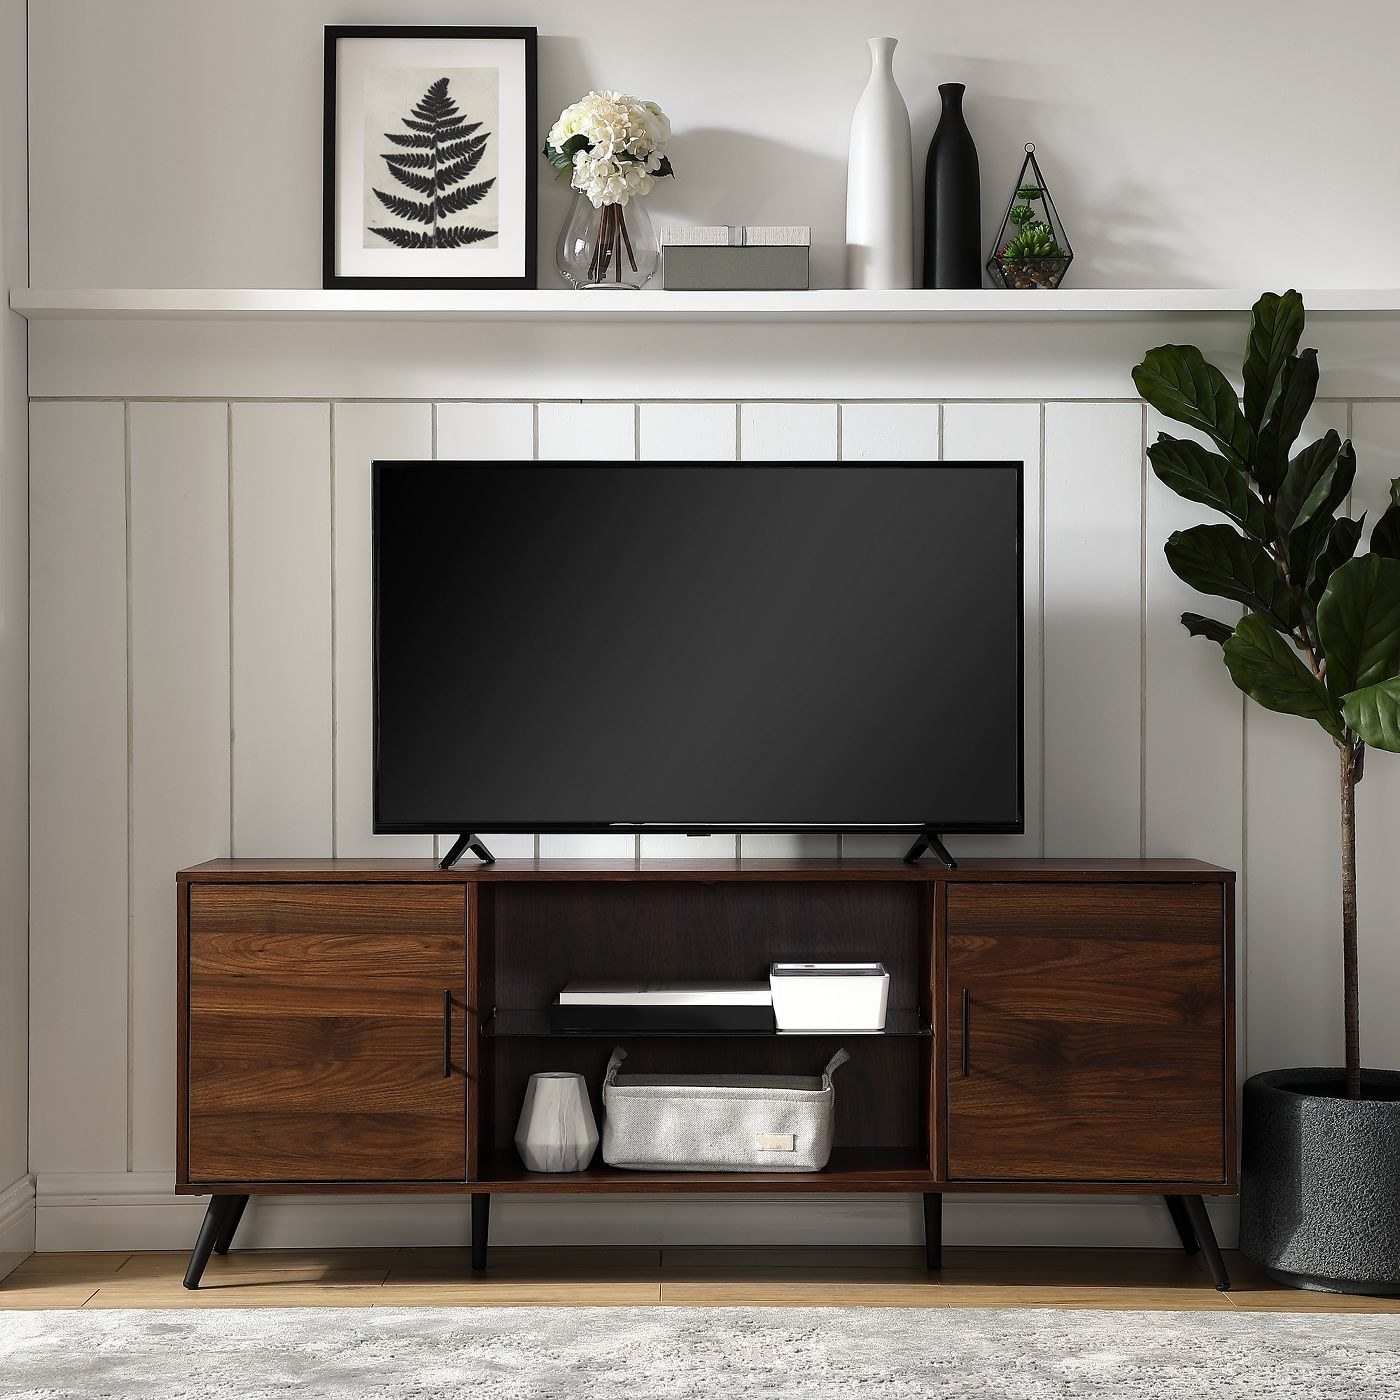 A mid century modern storage console TV stand in a walnut finish